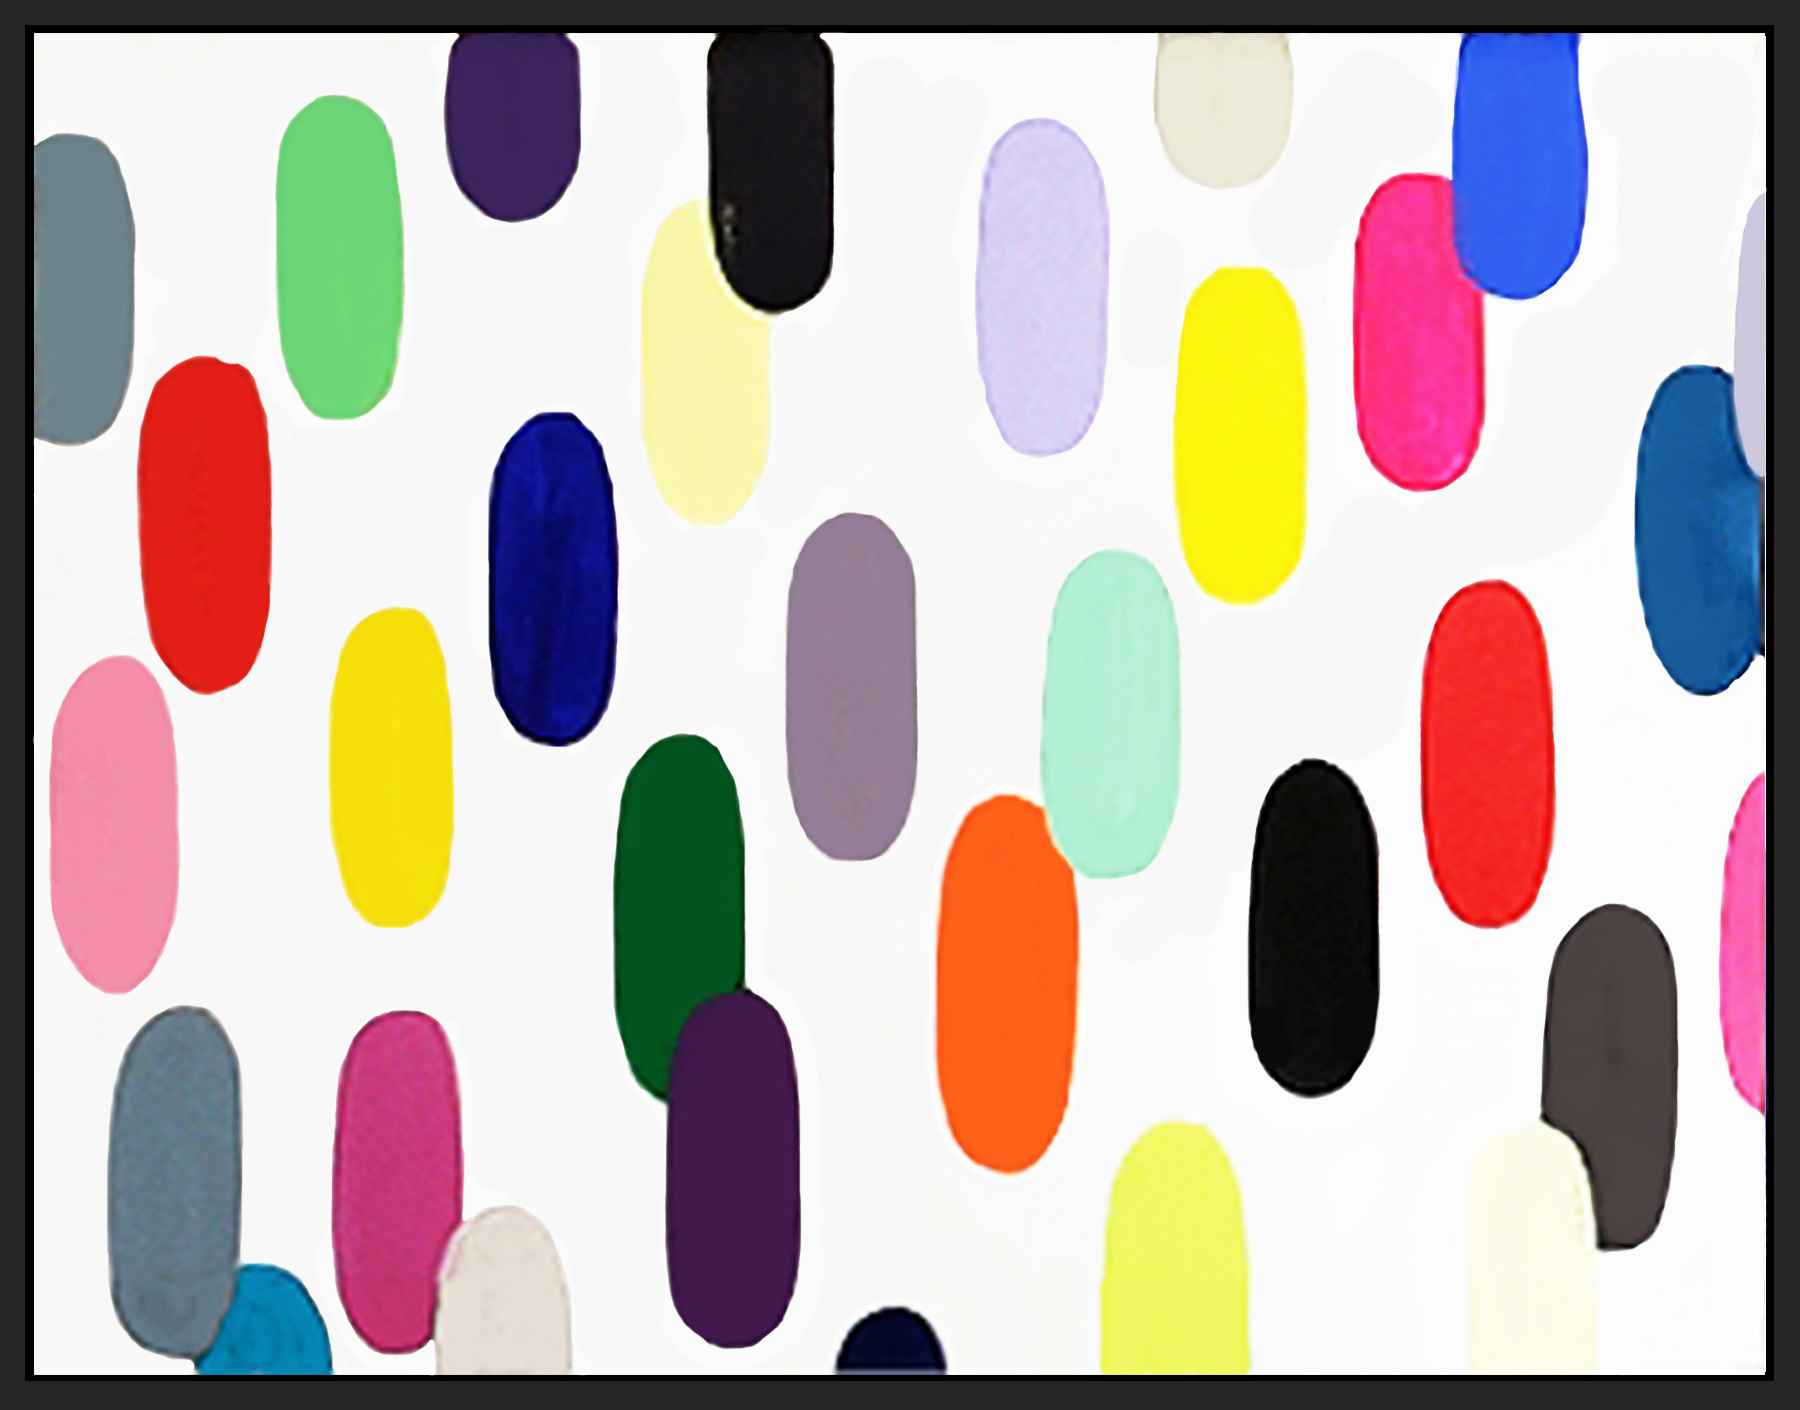 "Jelly Bean#59, 2018, acrylic on canvas, 48"" x 36"" (122 x 91.4 cm) in Seoul, Korea"